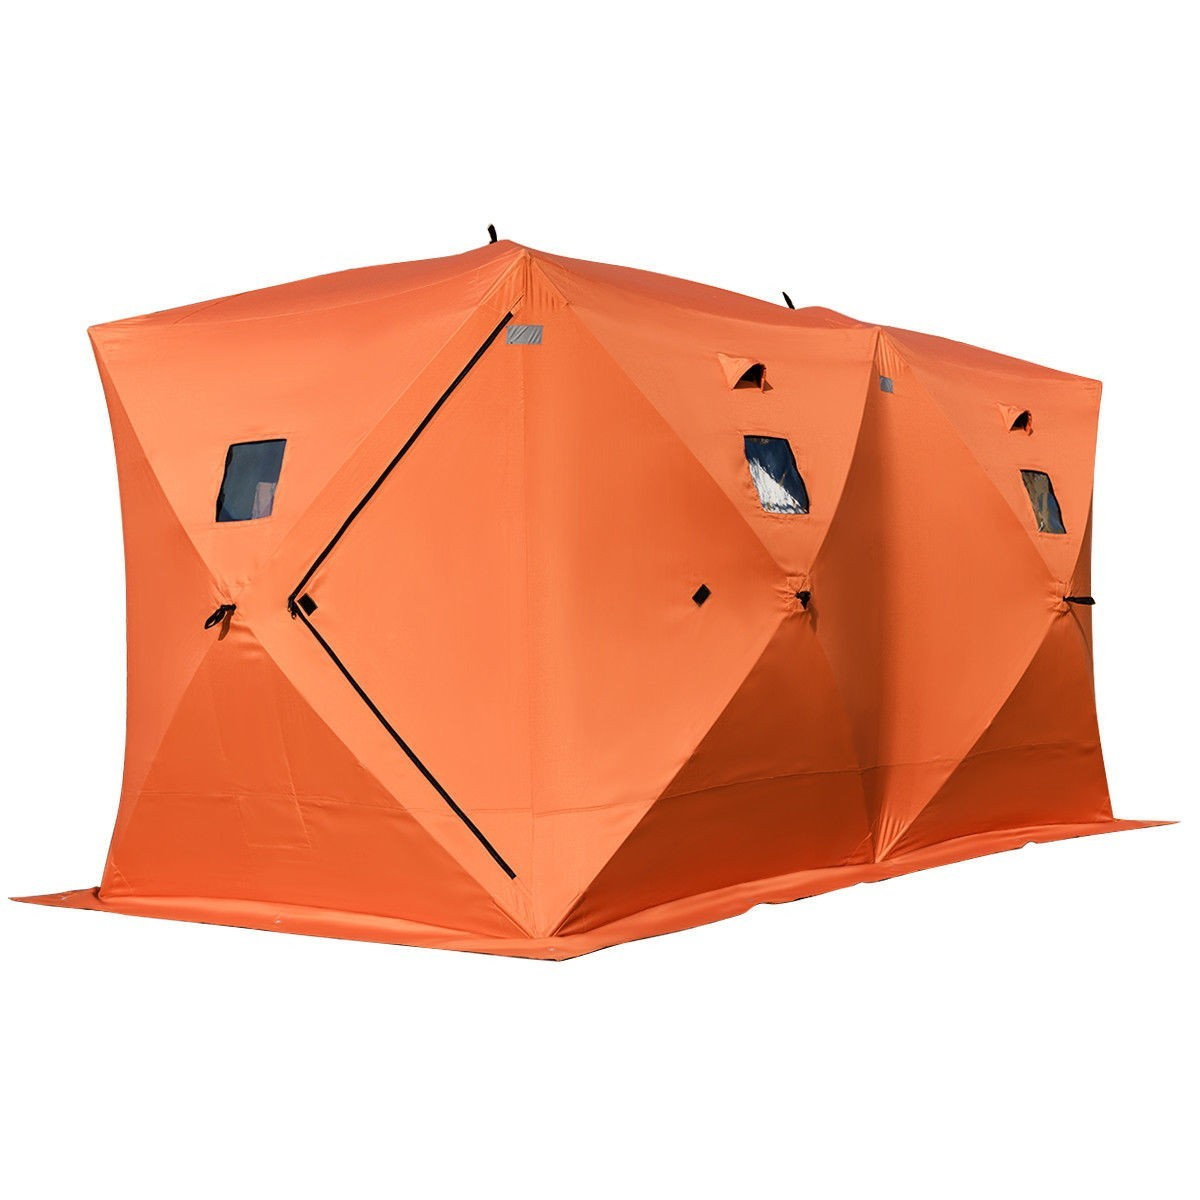 Waterproof Pop-up 8-person Ice Shelter Fishing Tent Outdoor by